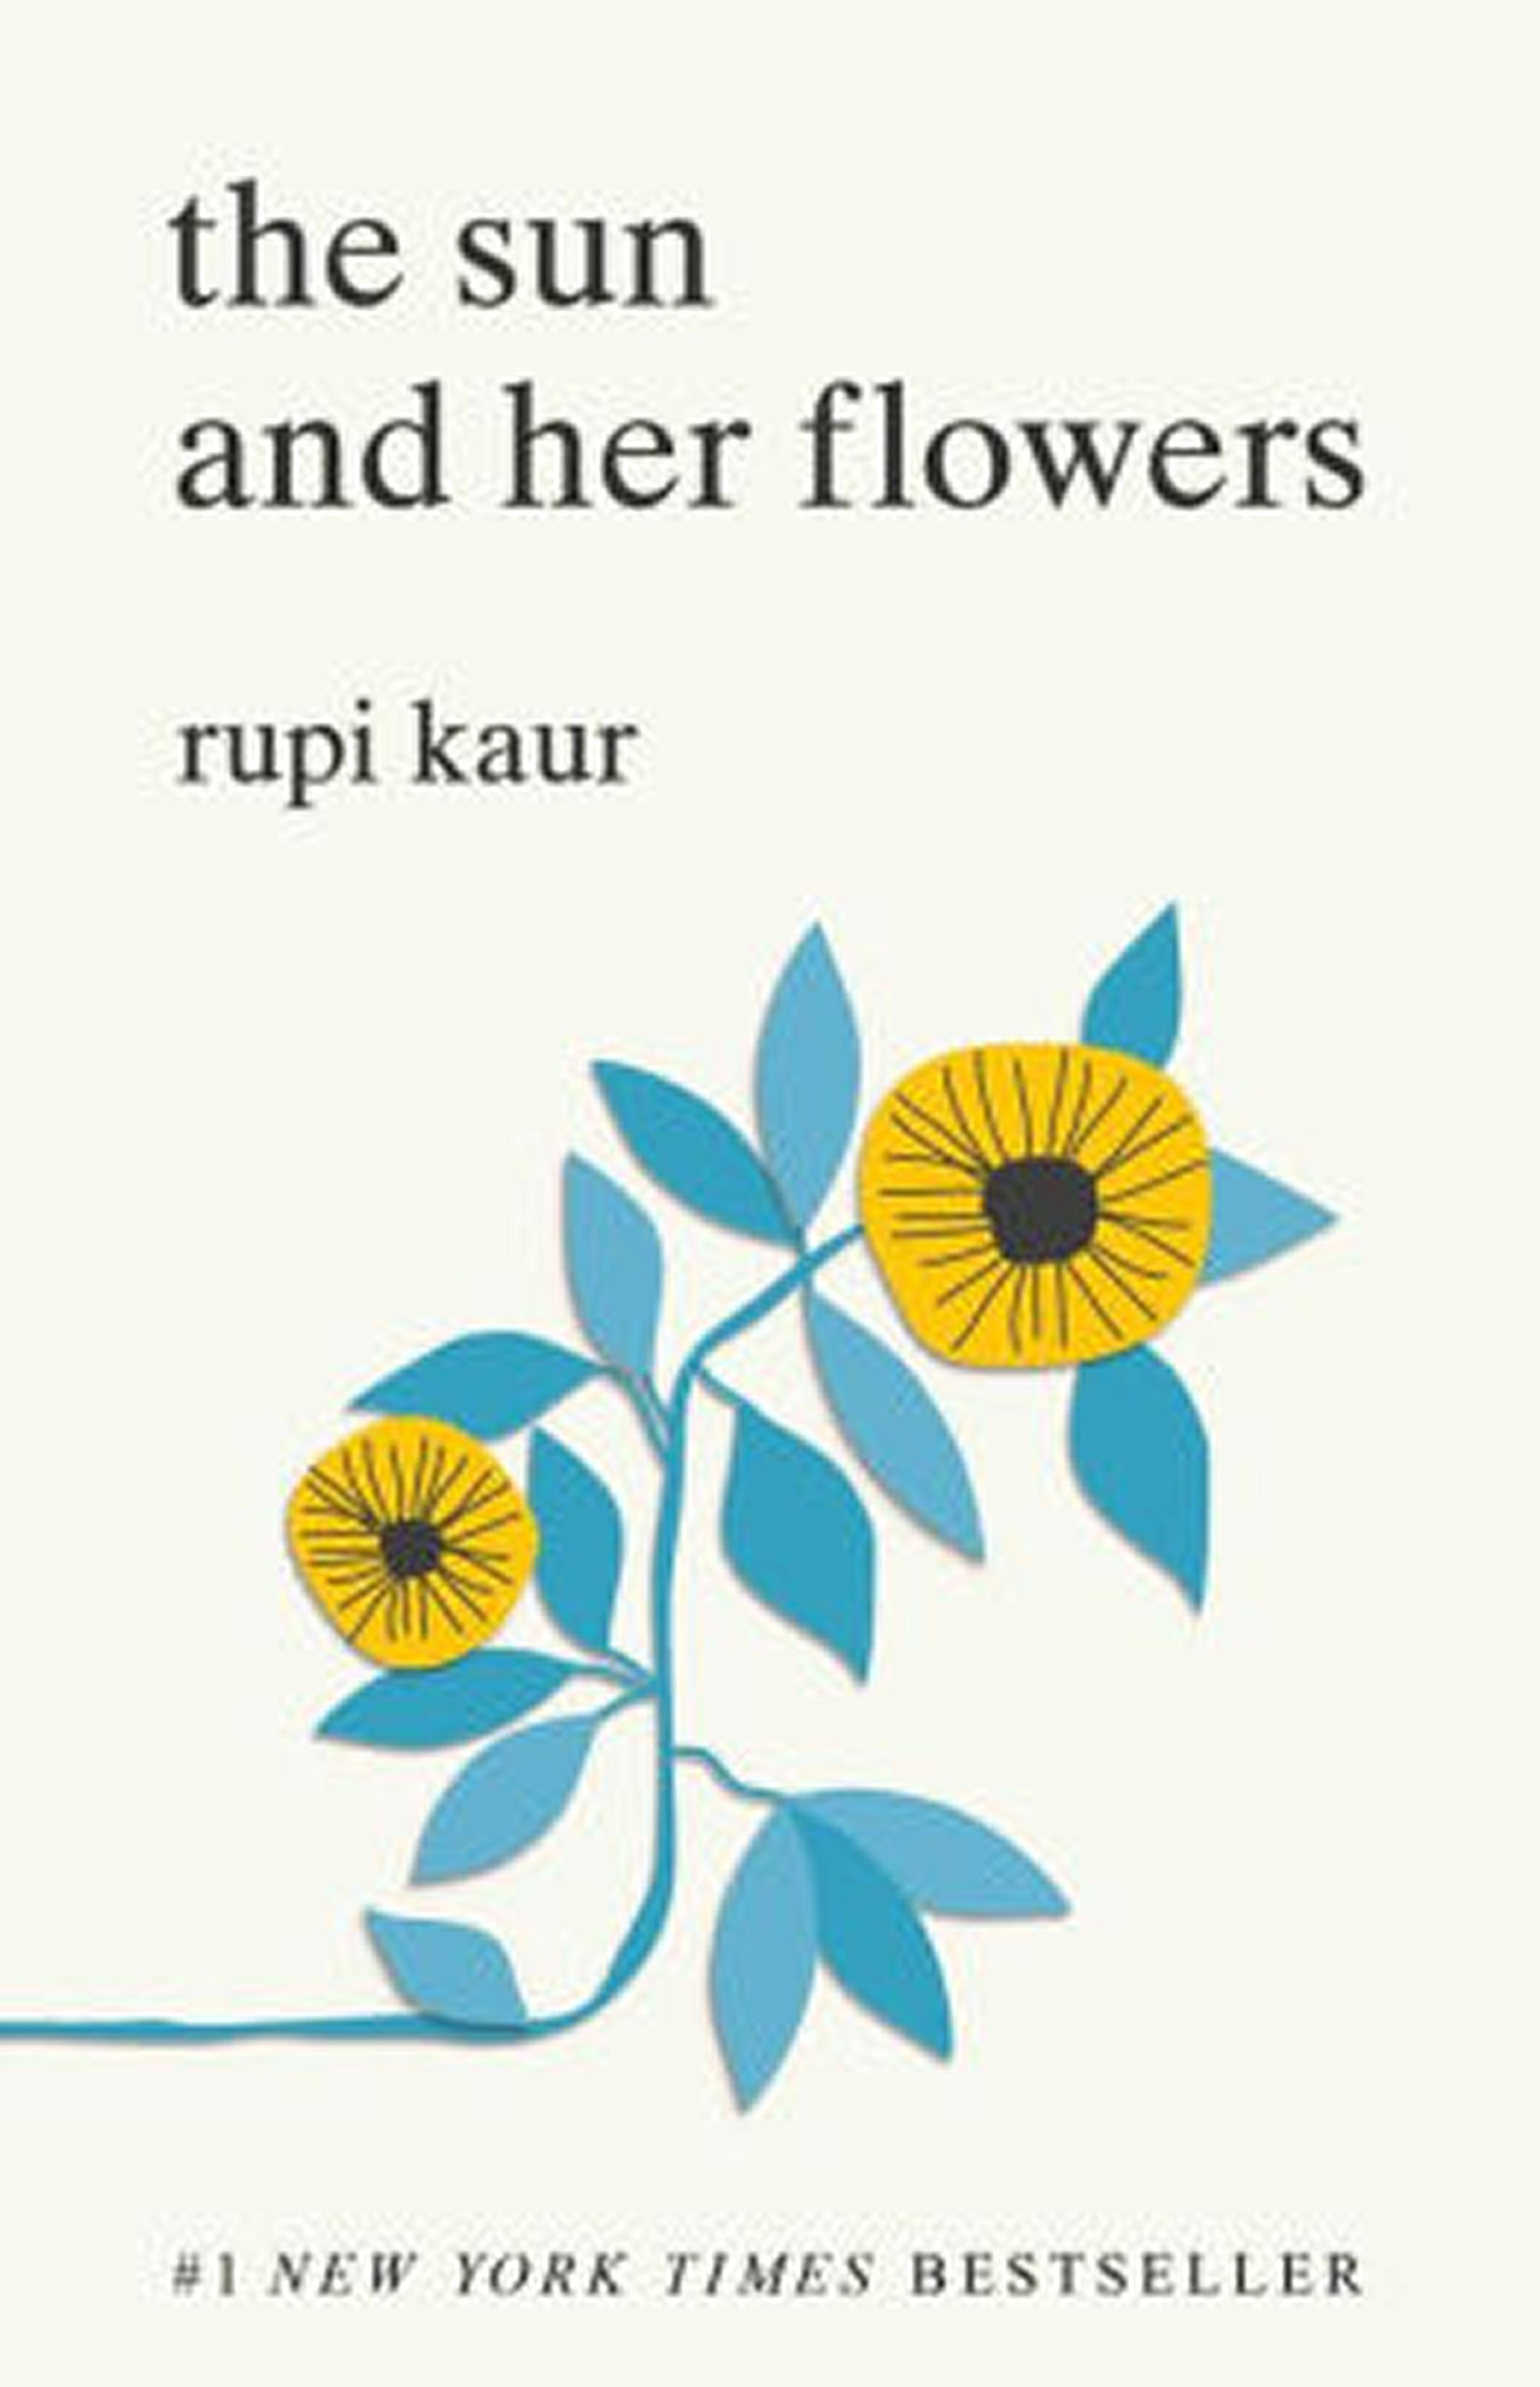 My Book Wish List: The Sun and Her Flowers